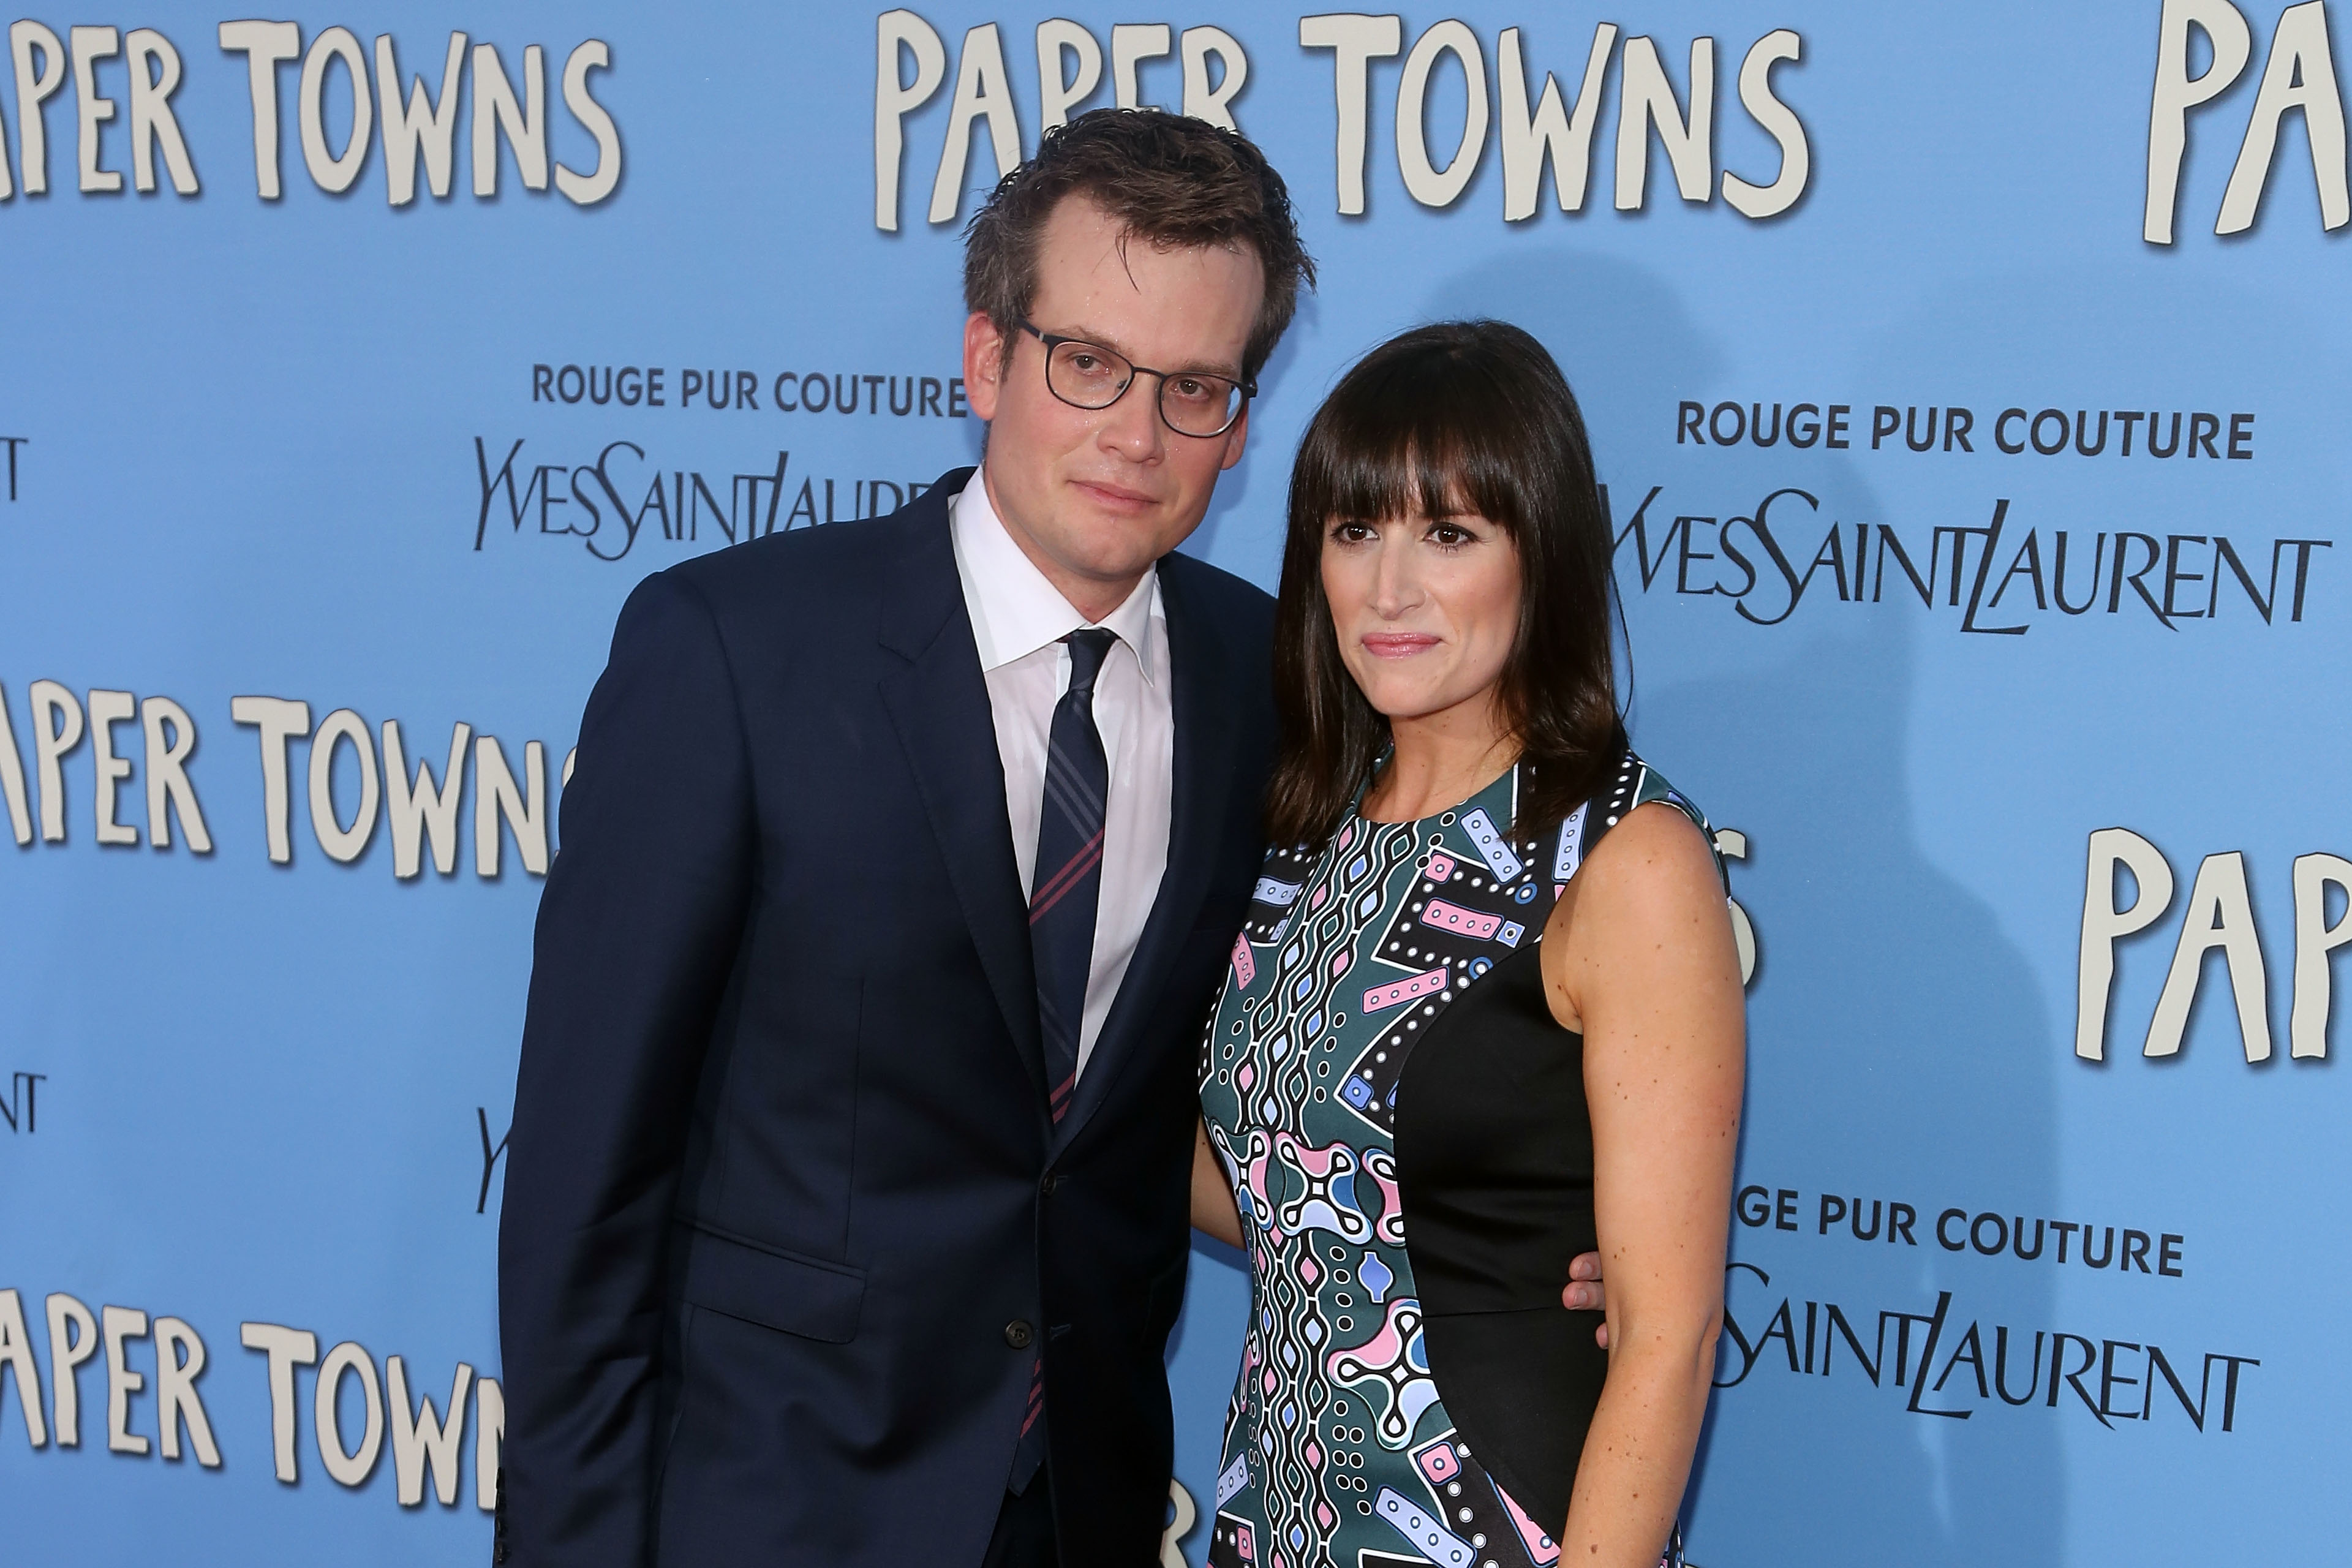 John Green and Sarah Urist attend the New York City premiere of 'Paper Towns' at AMC Loews Lincoln Square on July 21, 2015 in New York City.